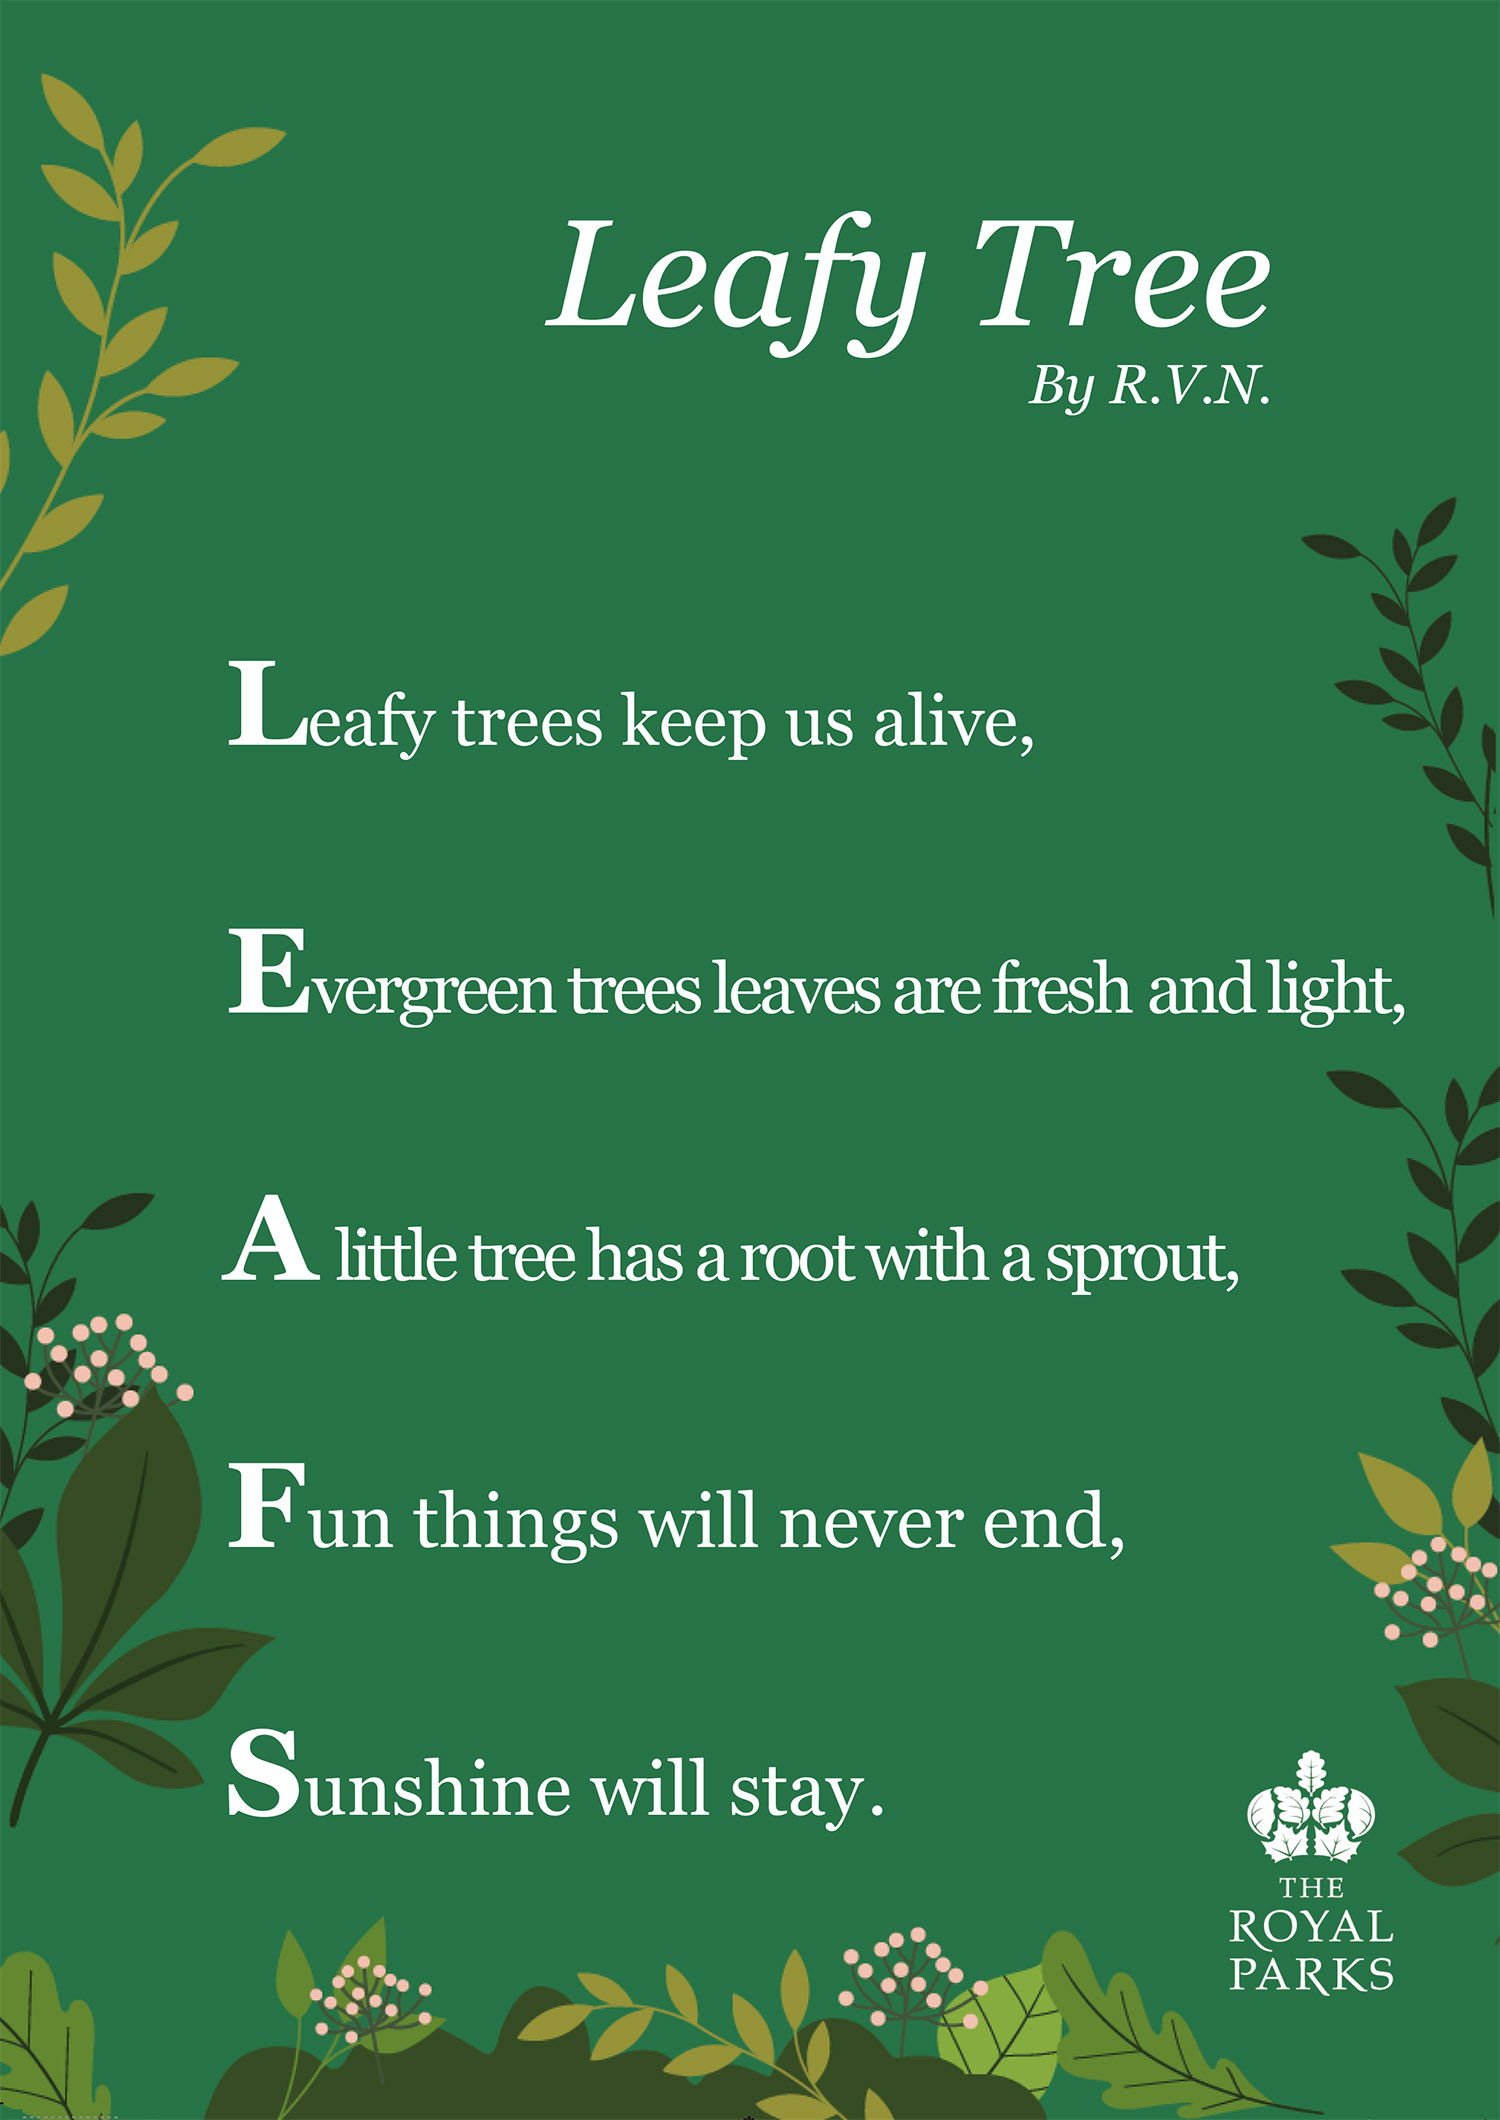 Leafy Tree by R.V.N. (Our Lady Immaculate Catholic Primary School)